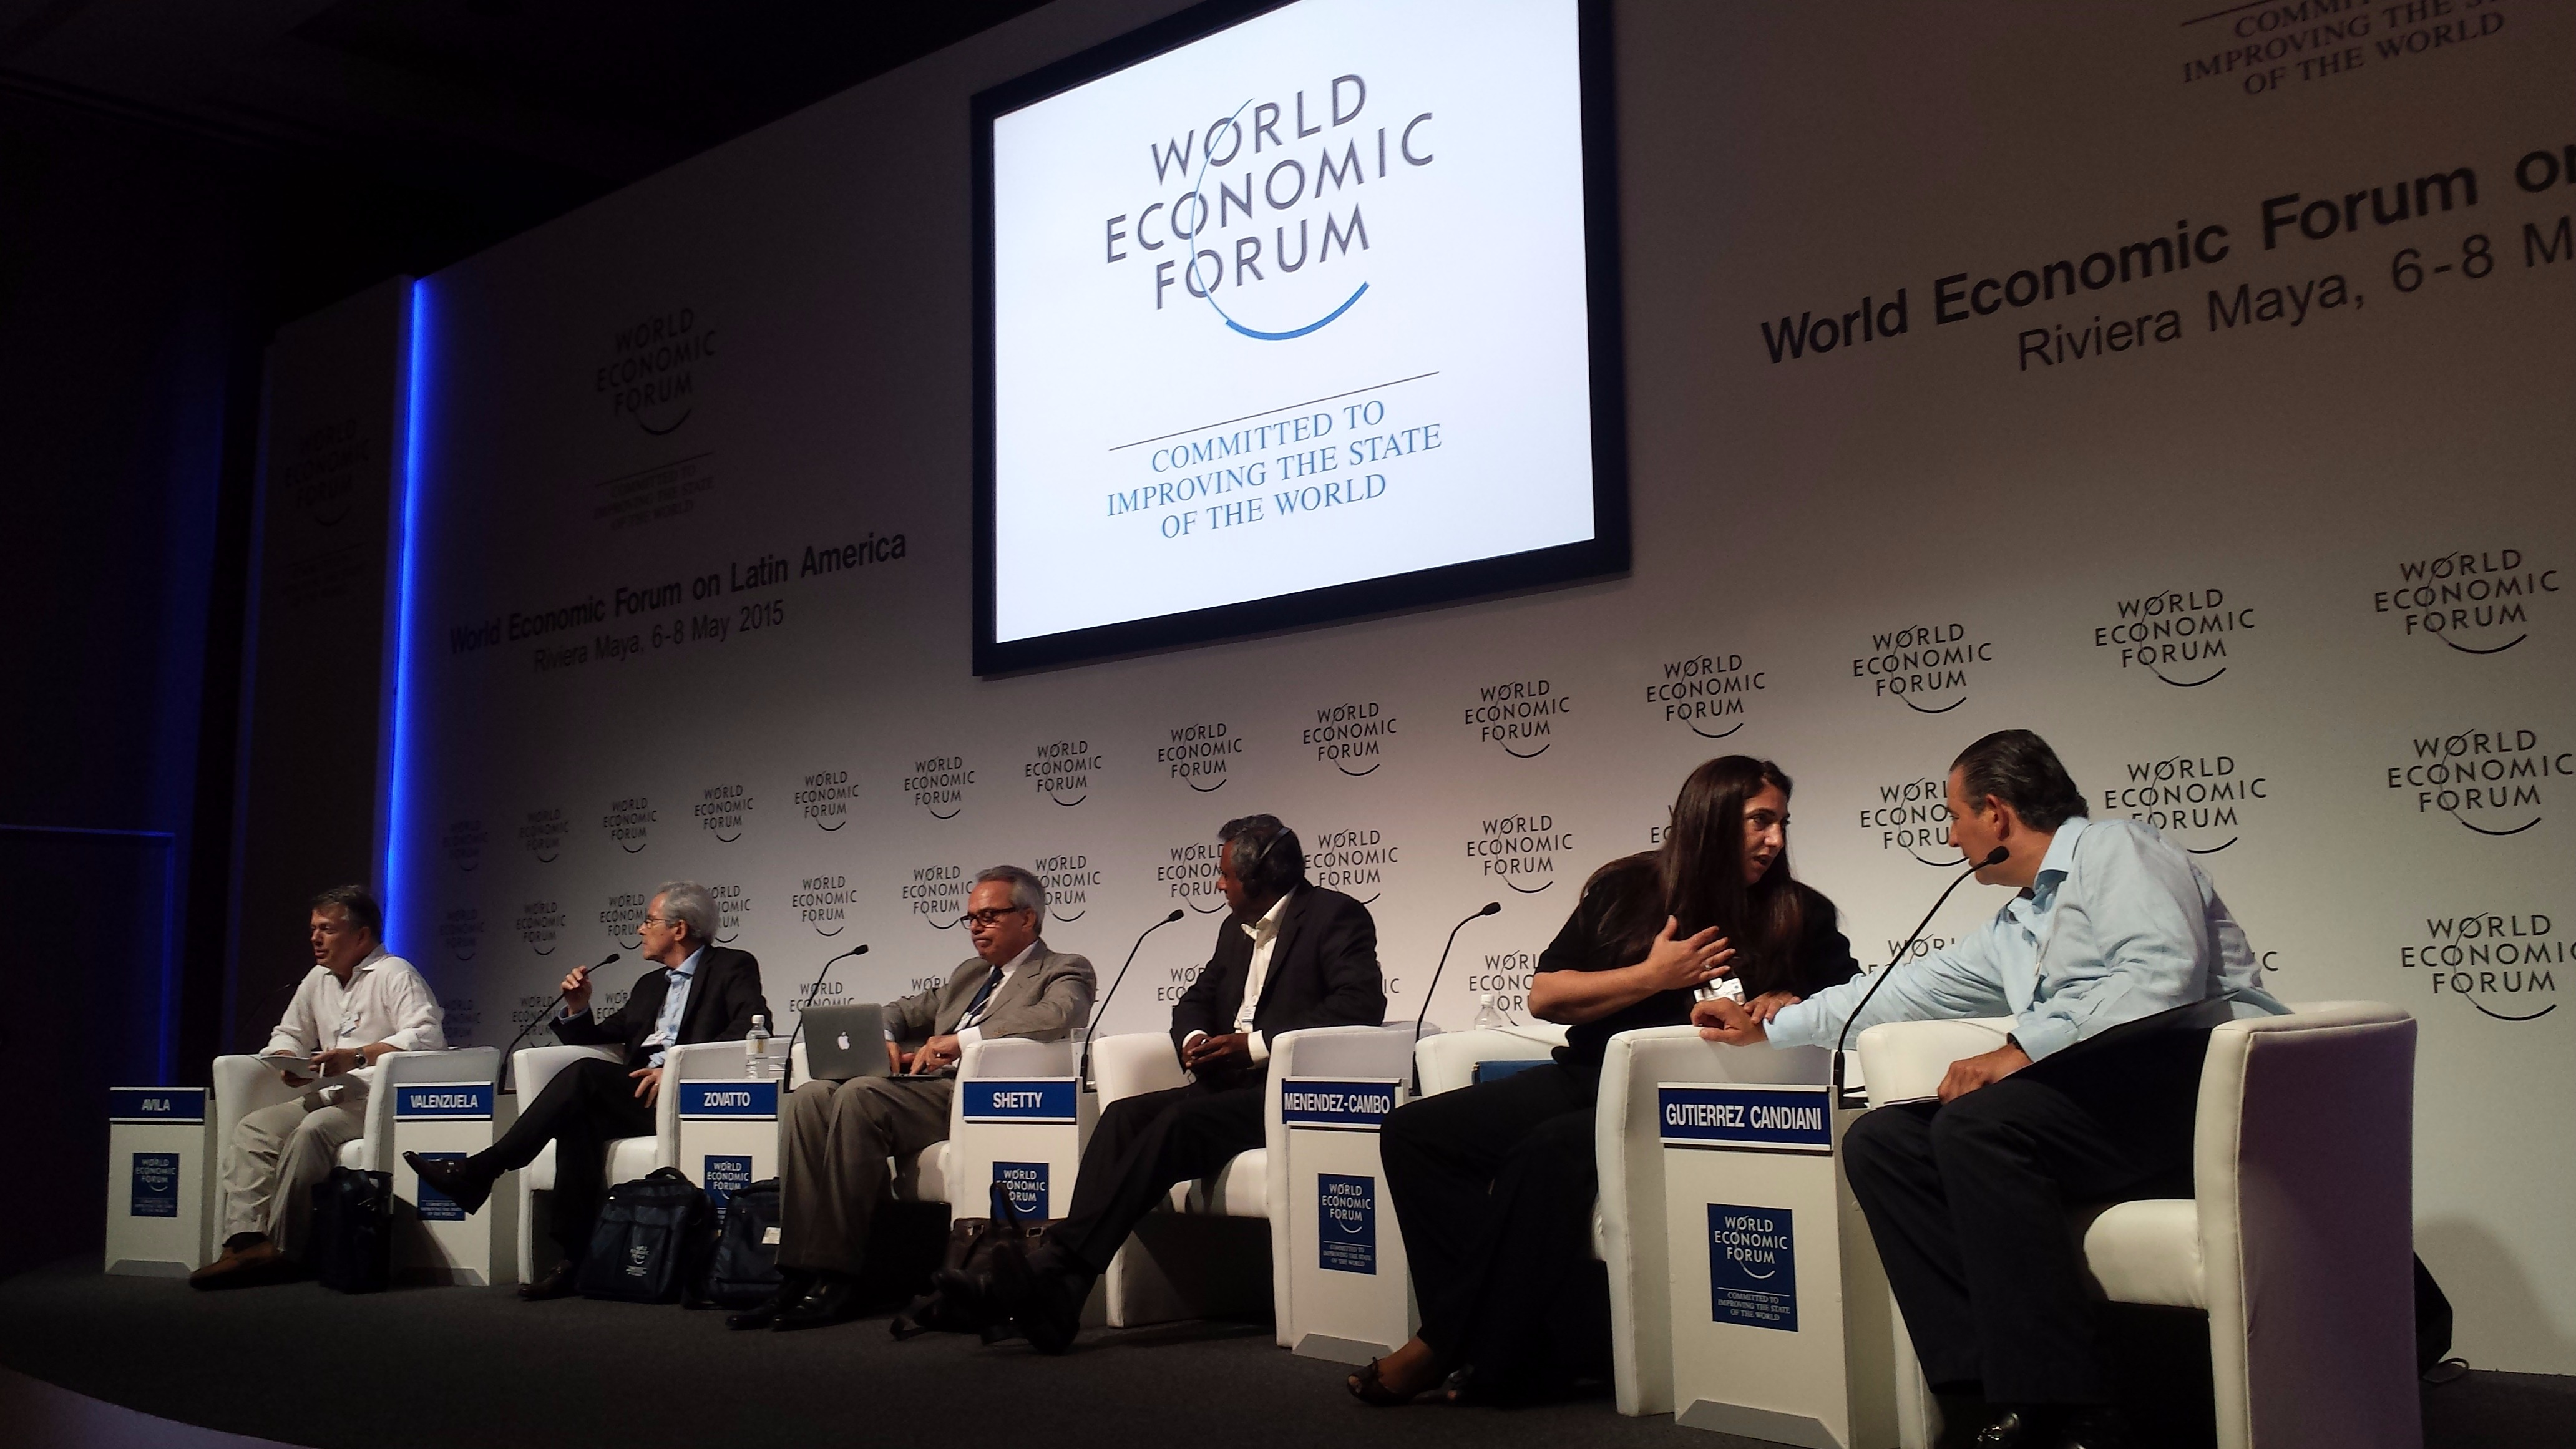 Participants in a 2015 World Economic Forum session on The Rise of Institutions. Shown here are Leonel Fernandez, FUNGLODE (moderator), Gerardo Gutierrez Candiani, President, Business Coordinating Council (CCE) Mexico, Arturo Valenzuela, Covington & Burli